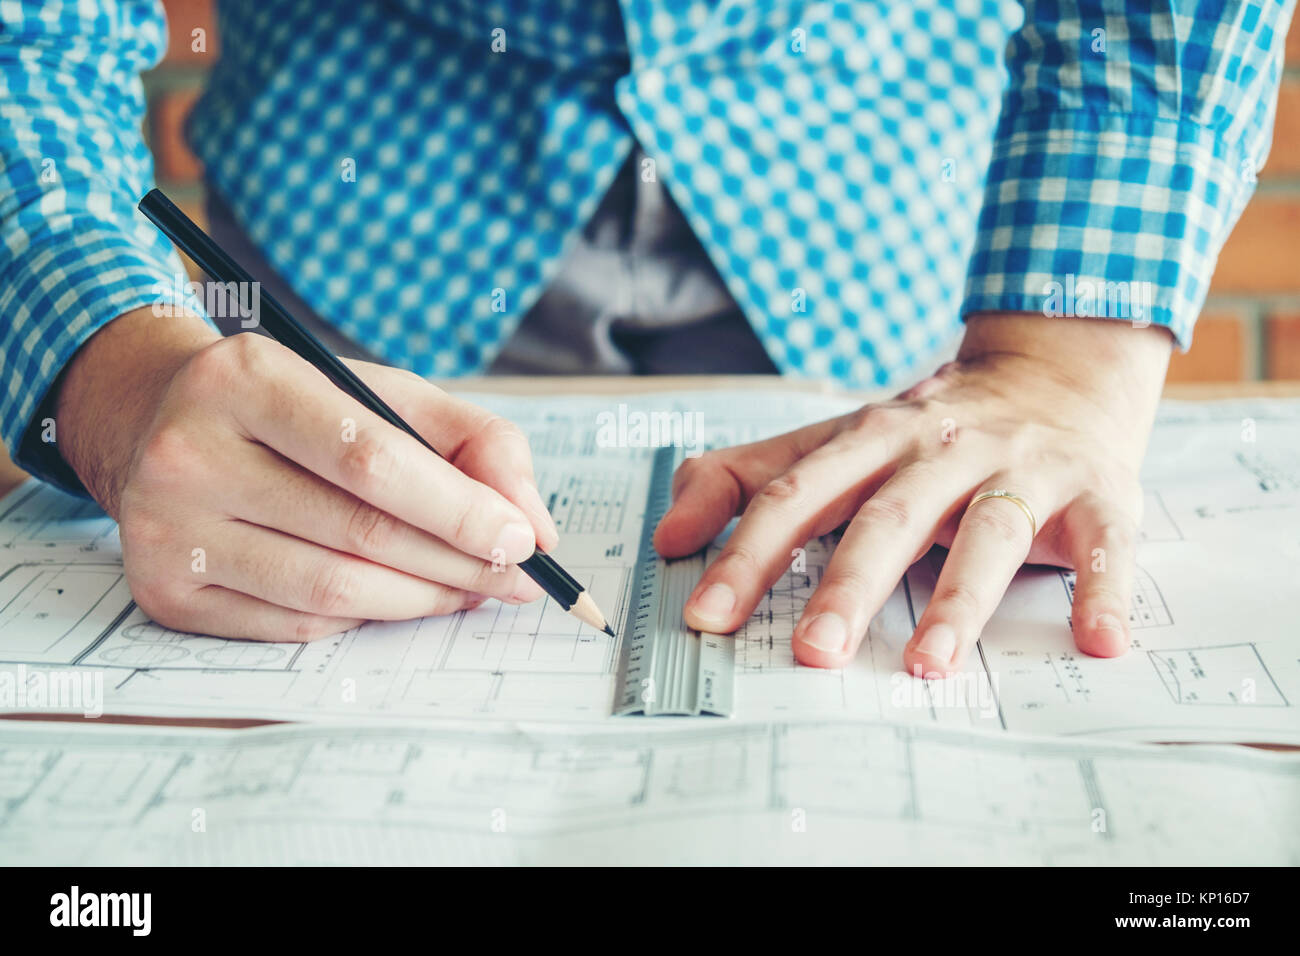 Architect office blueprint computer keyboard stock photos architect or engineer working in office on blueprint architects workplace stock image malvernweather Image collections